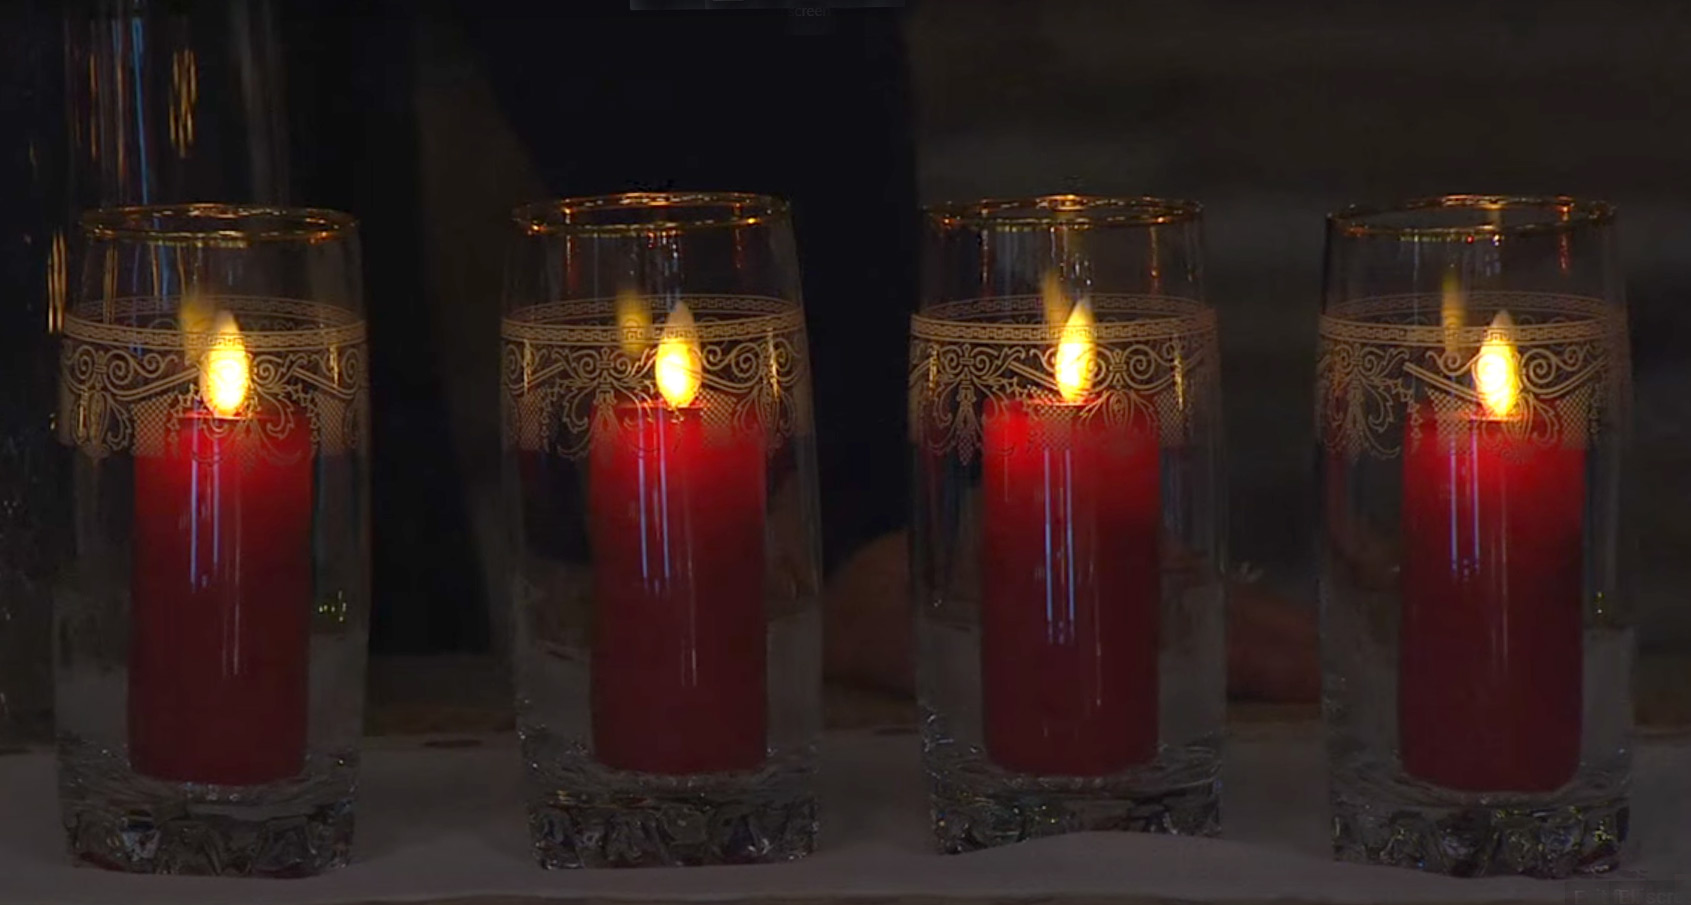 Red Wax 3 5 Inch Moving Flame Votive Candles Set Of 2